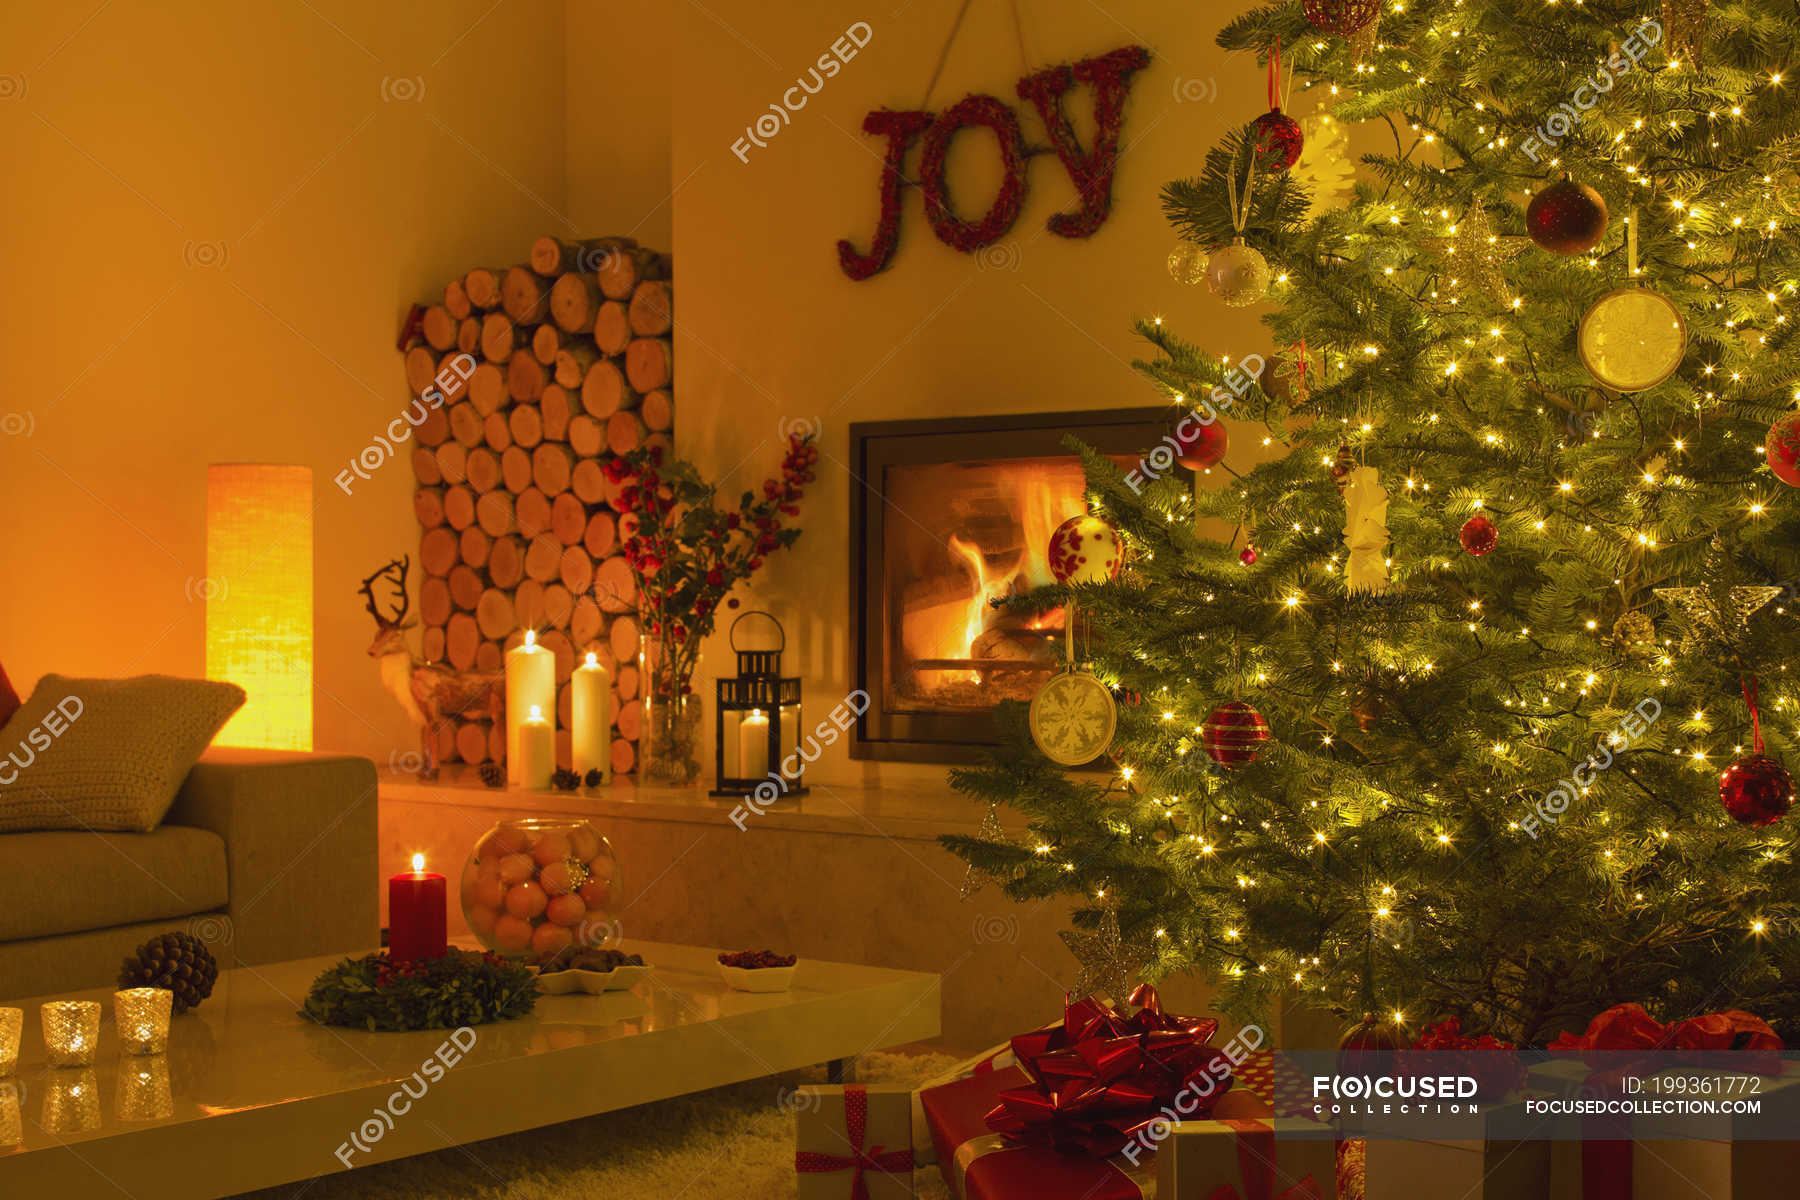 Ambient Fireplace And Candles In Living Room With Christmas Tree